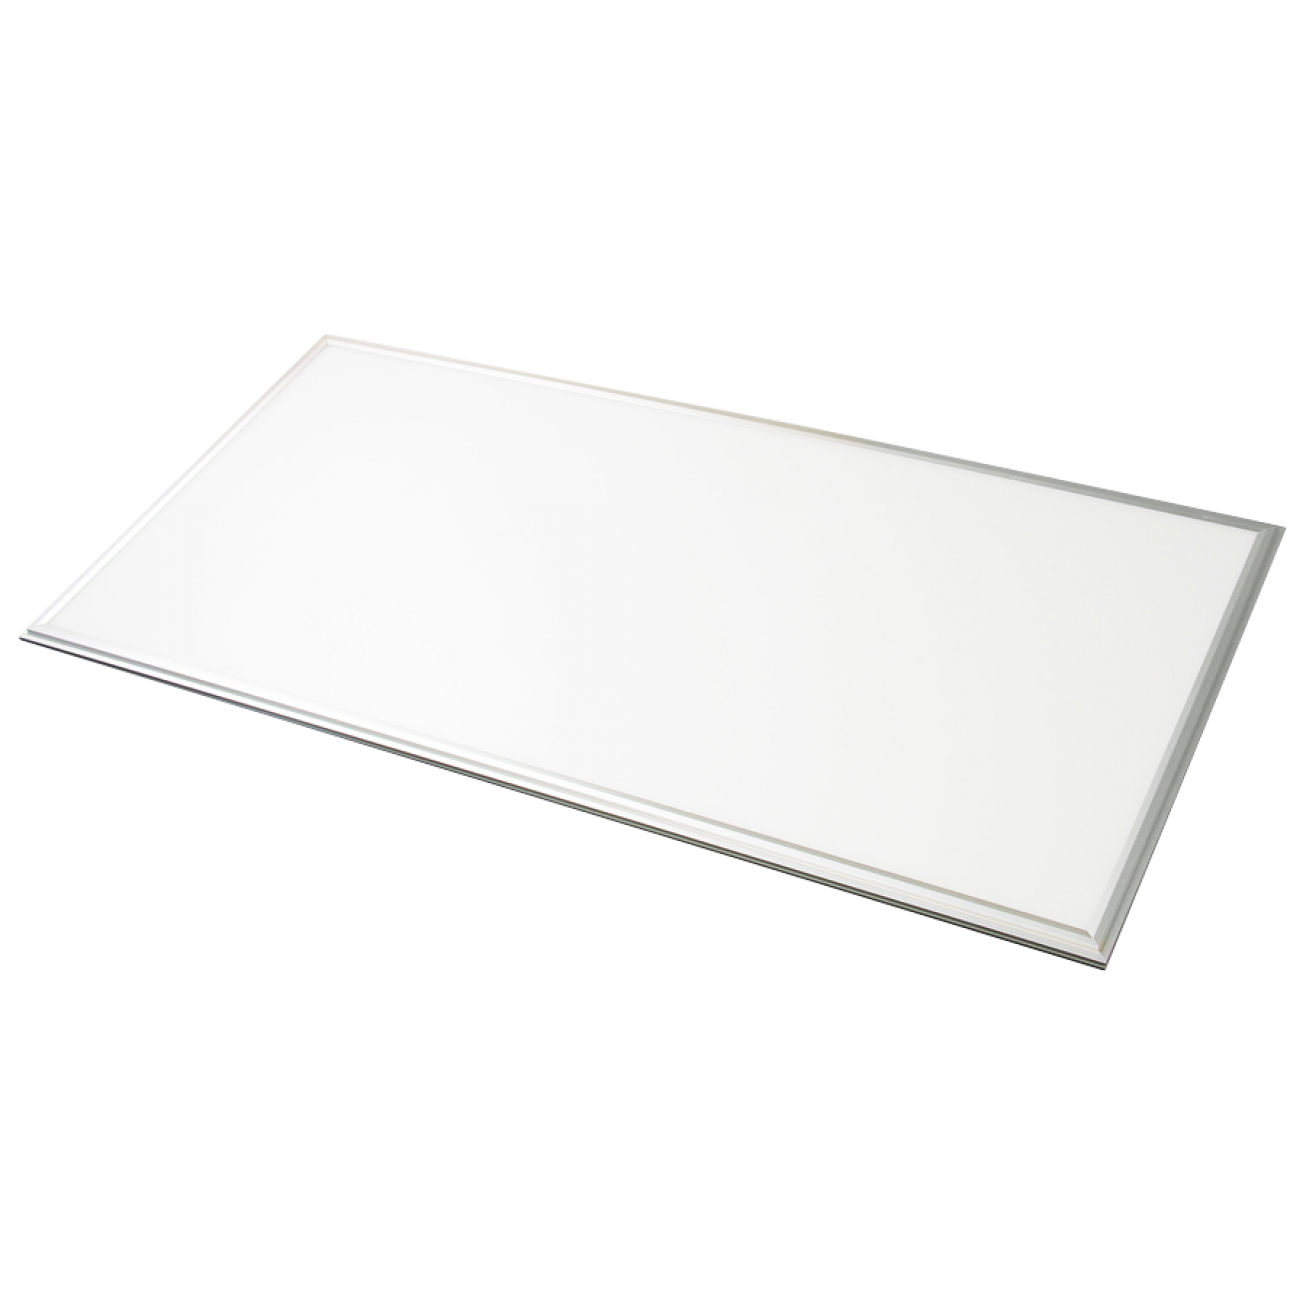 2'x4' LED Commercial Panel Light Fixture